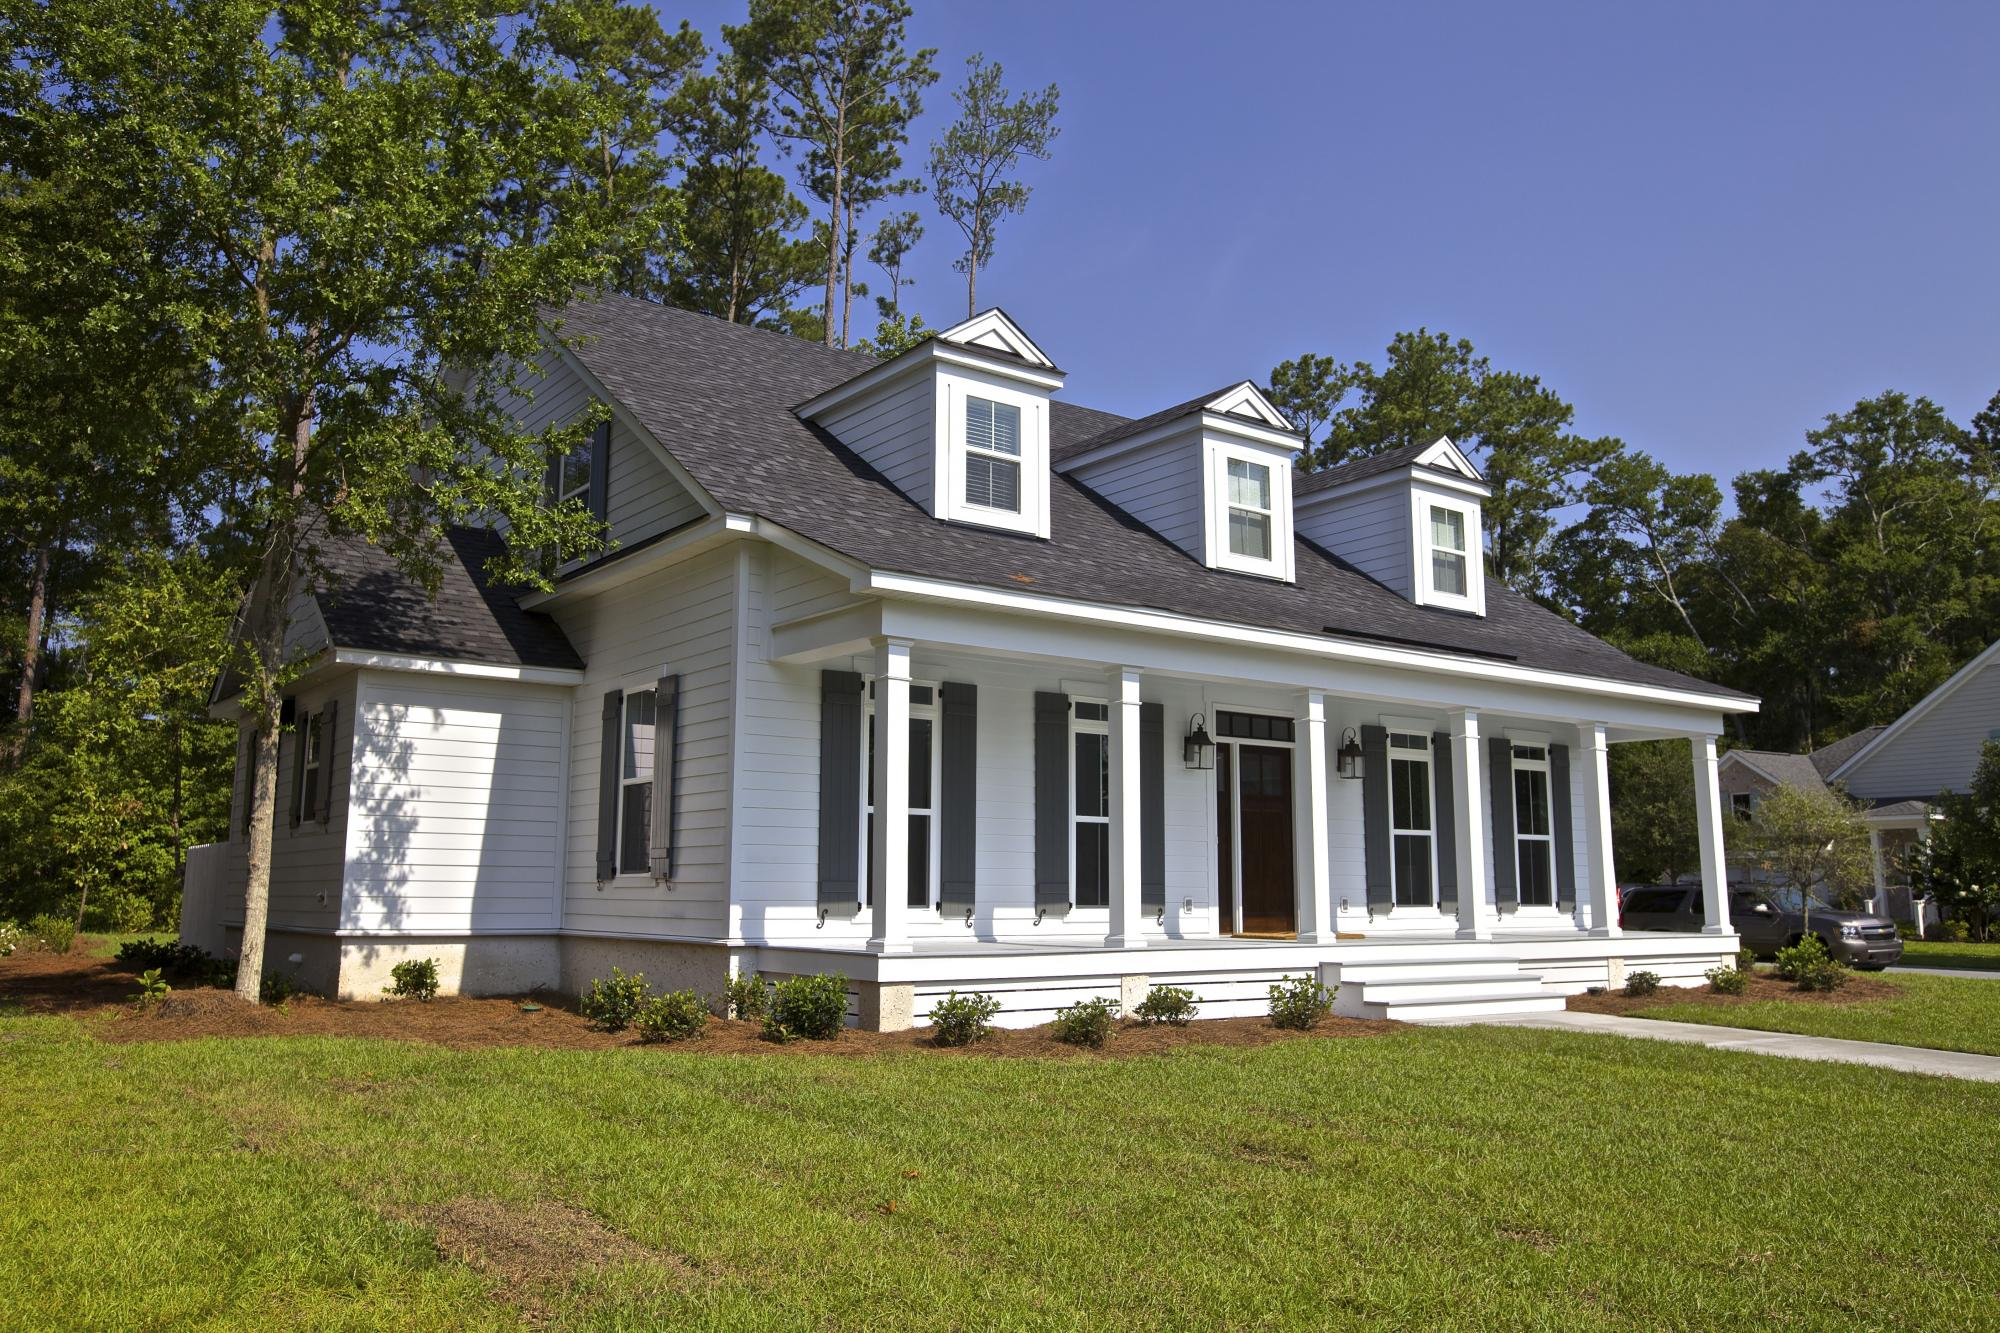 Model Homes Custom Home Builders Savannah Ga Konter